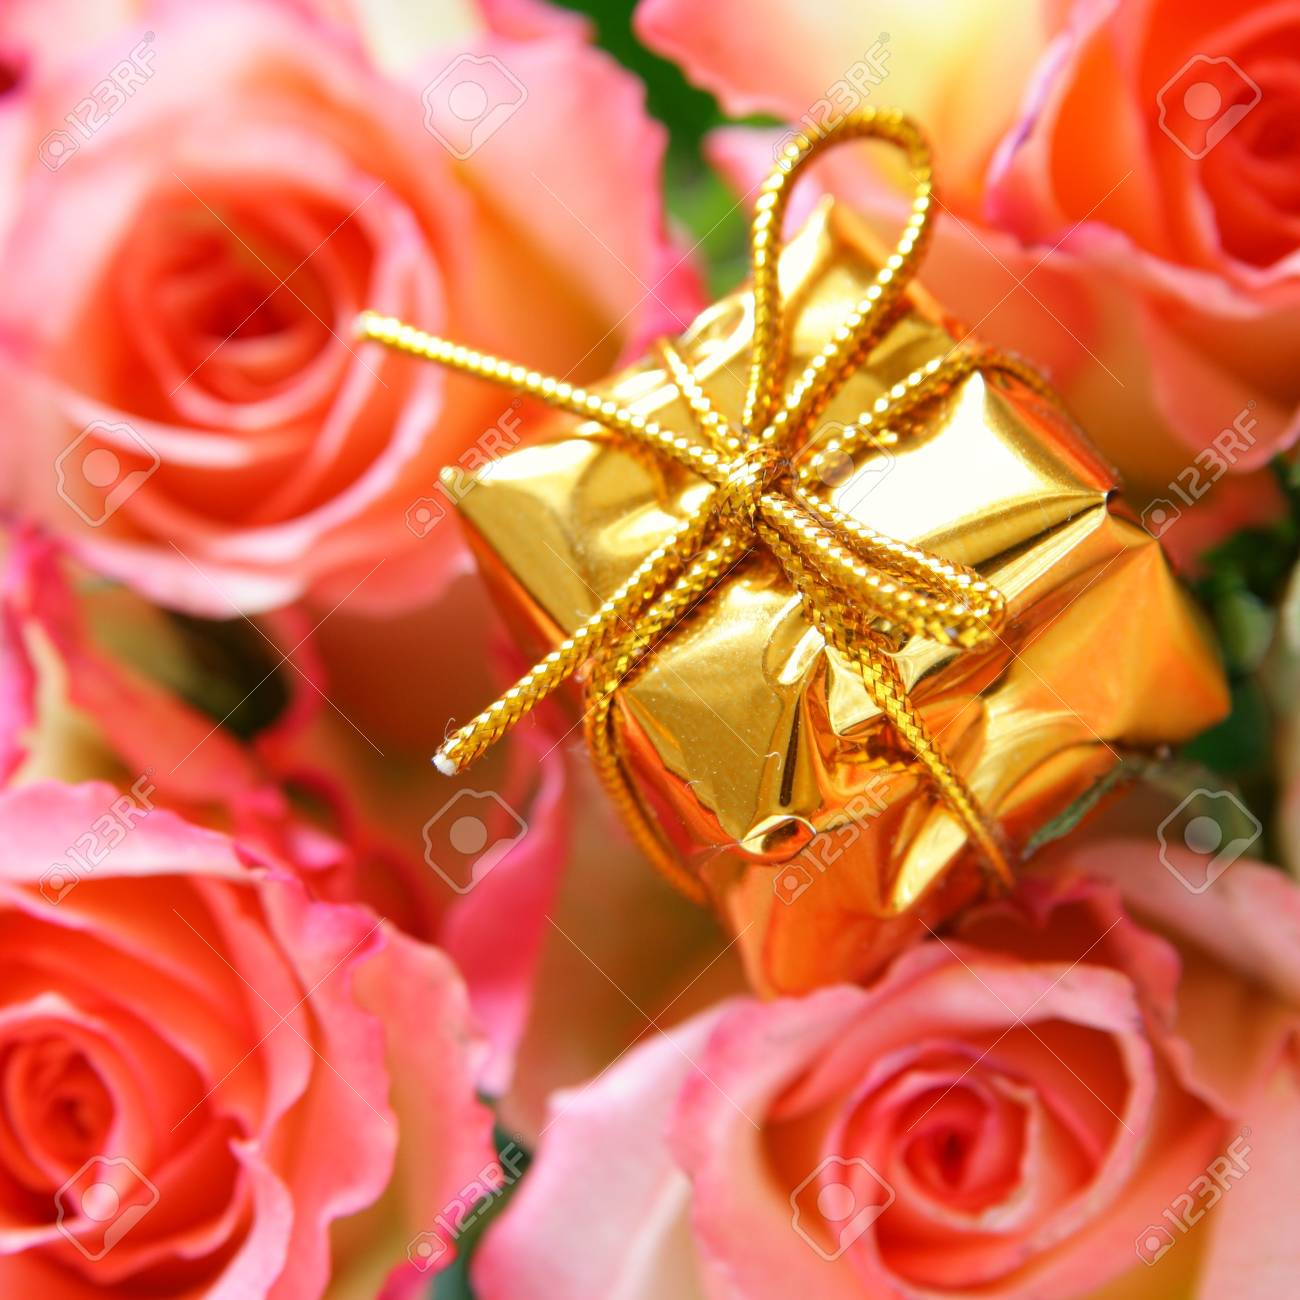 Gold box with gift and rosebuds in the background out of focus Stock Photo - 3865455